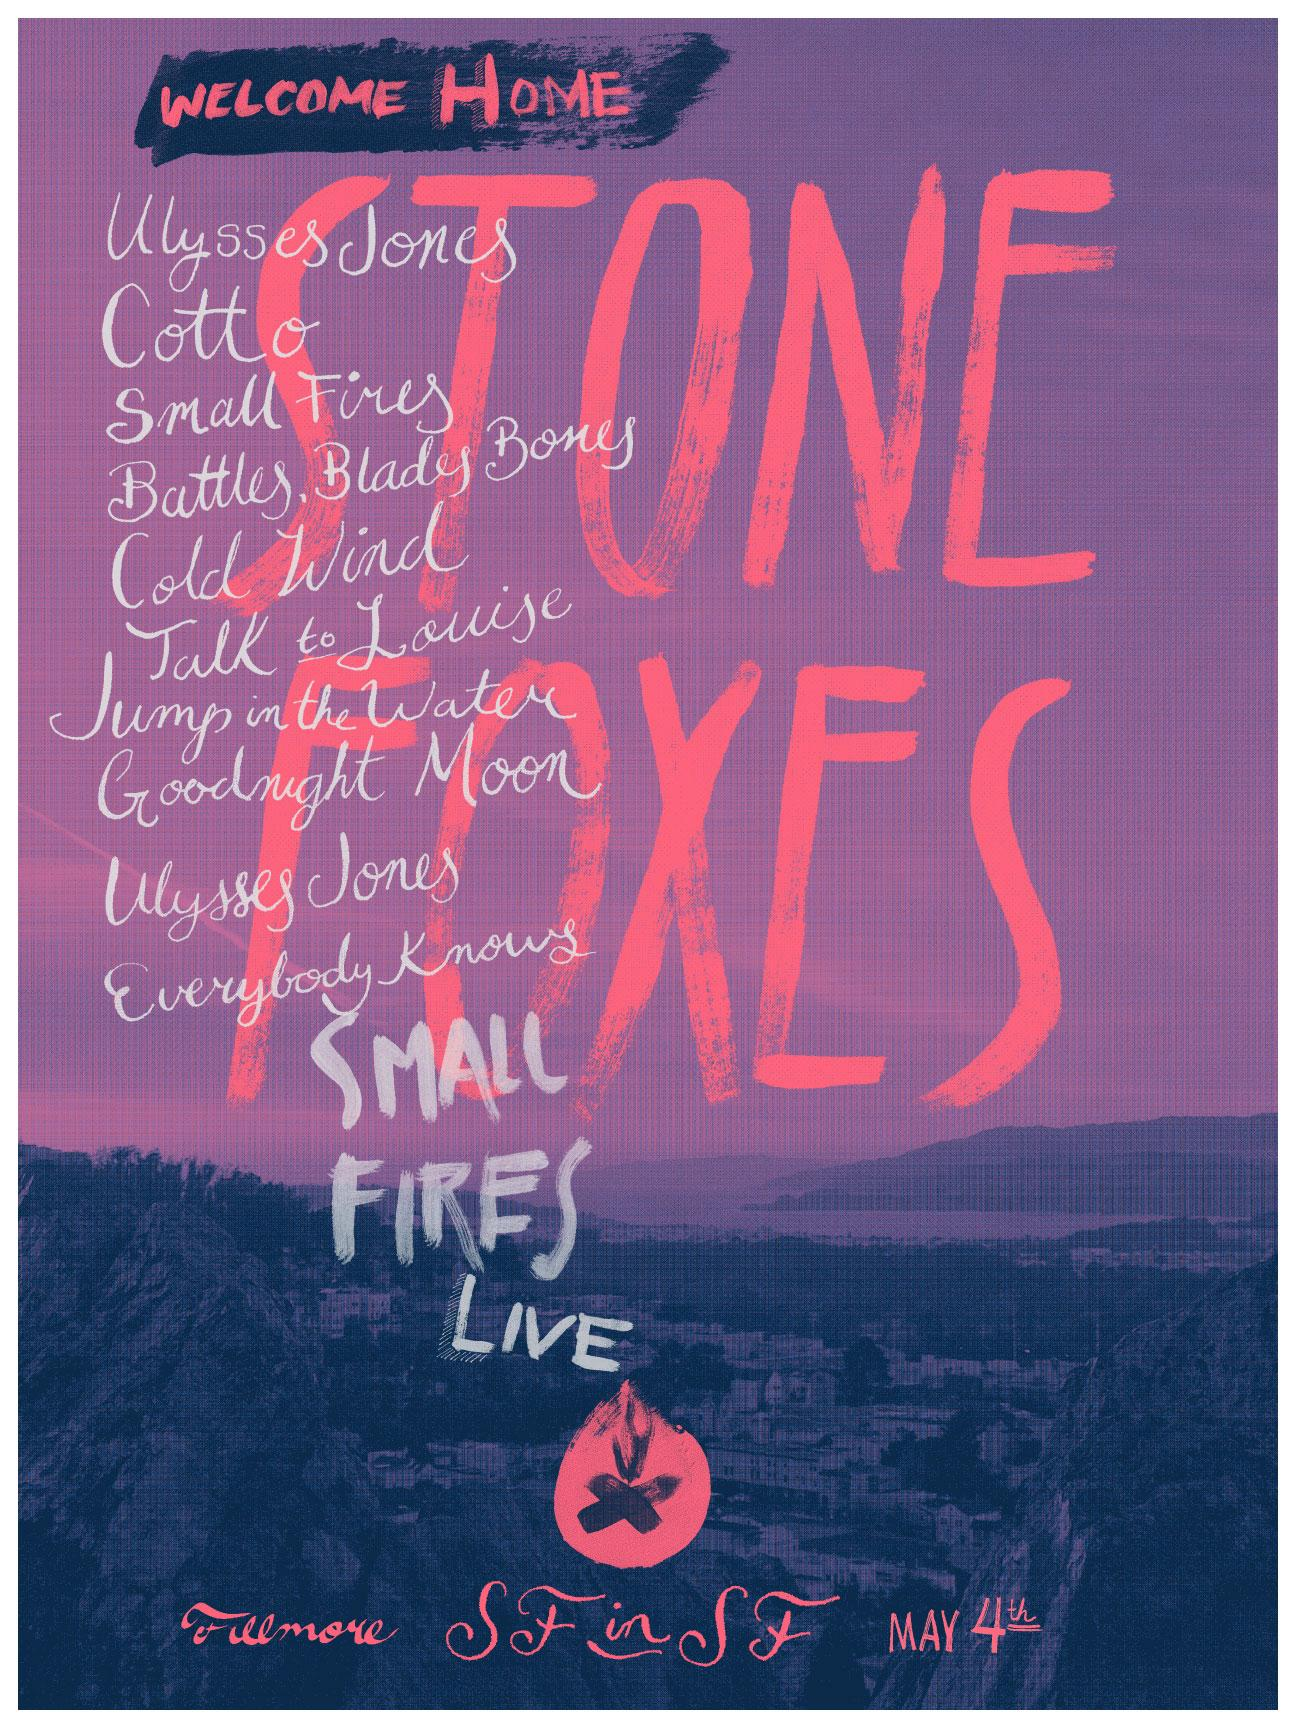 The Stone Foxes - A Homecoming Poster - image 3 - student project